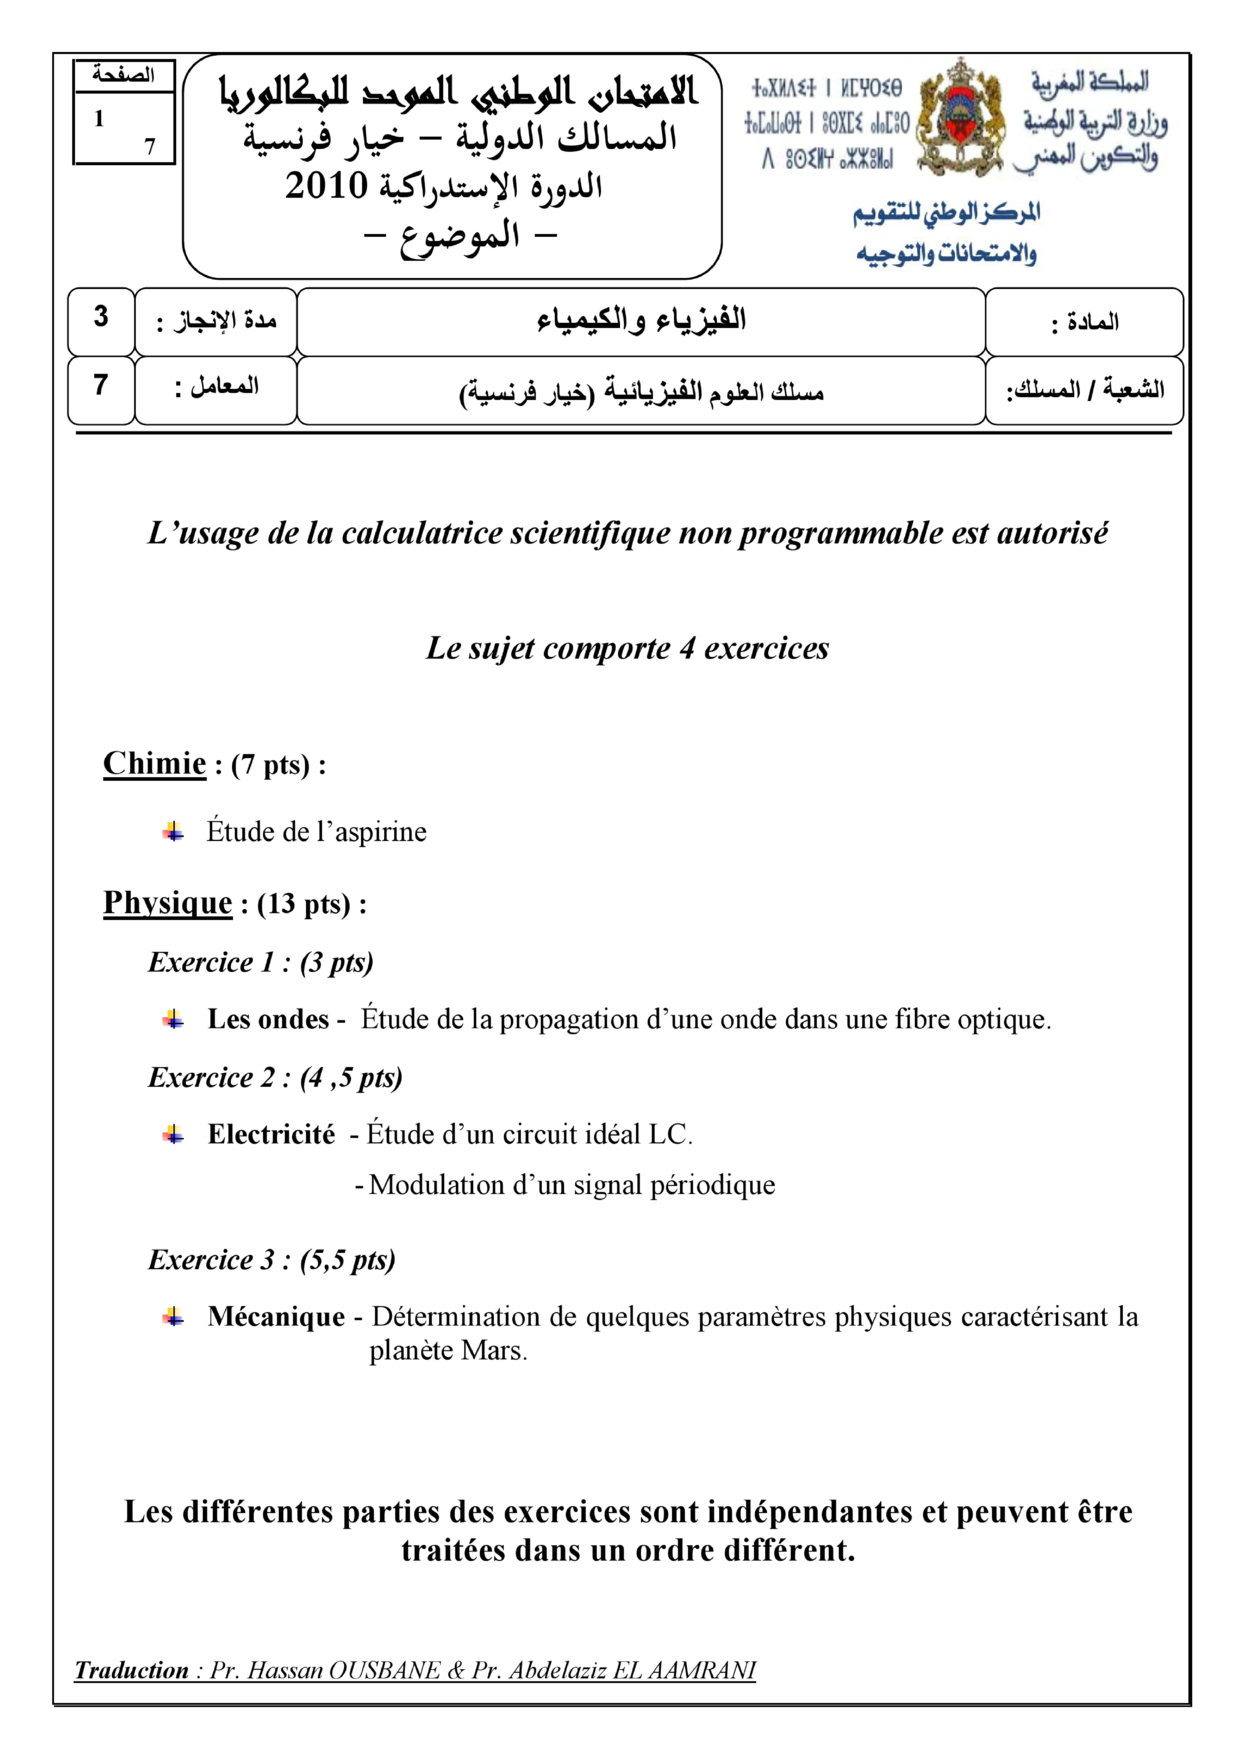 Examen National Physique-Chimie SPC 2010 Rattrapage - Sujet1.jpg